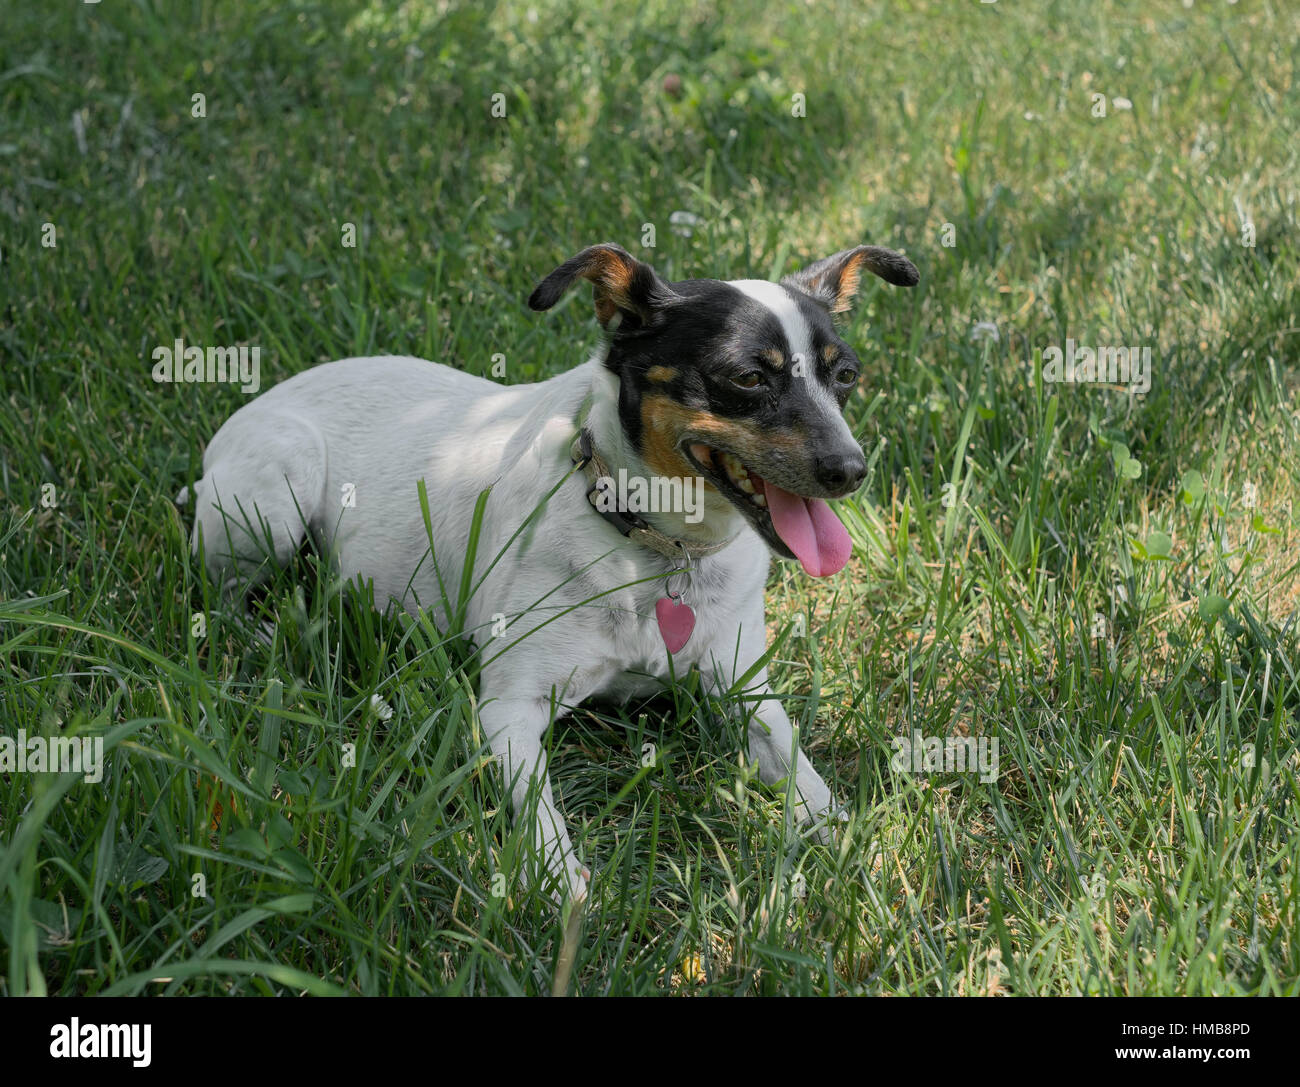 Rat Terrier dog in grass with tongue hanging out in hot summer weather. - Stock Image